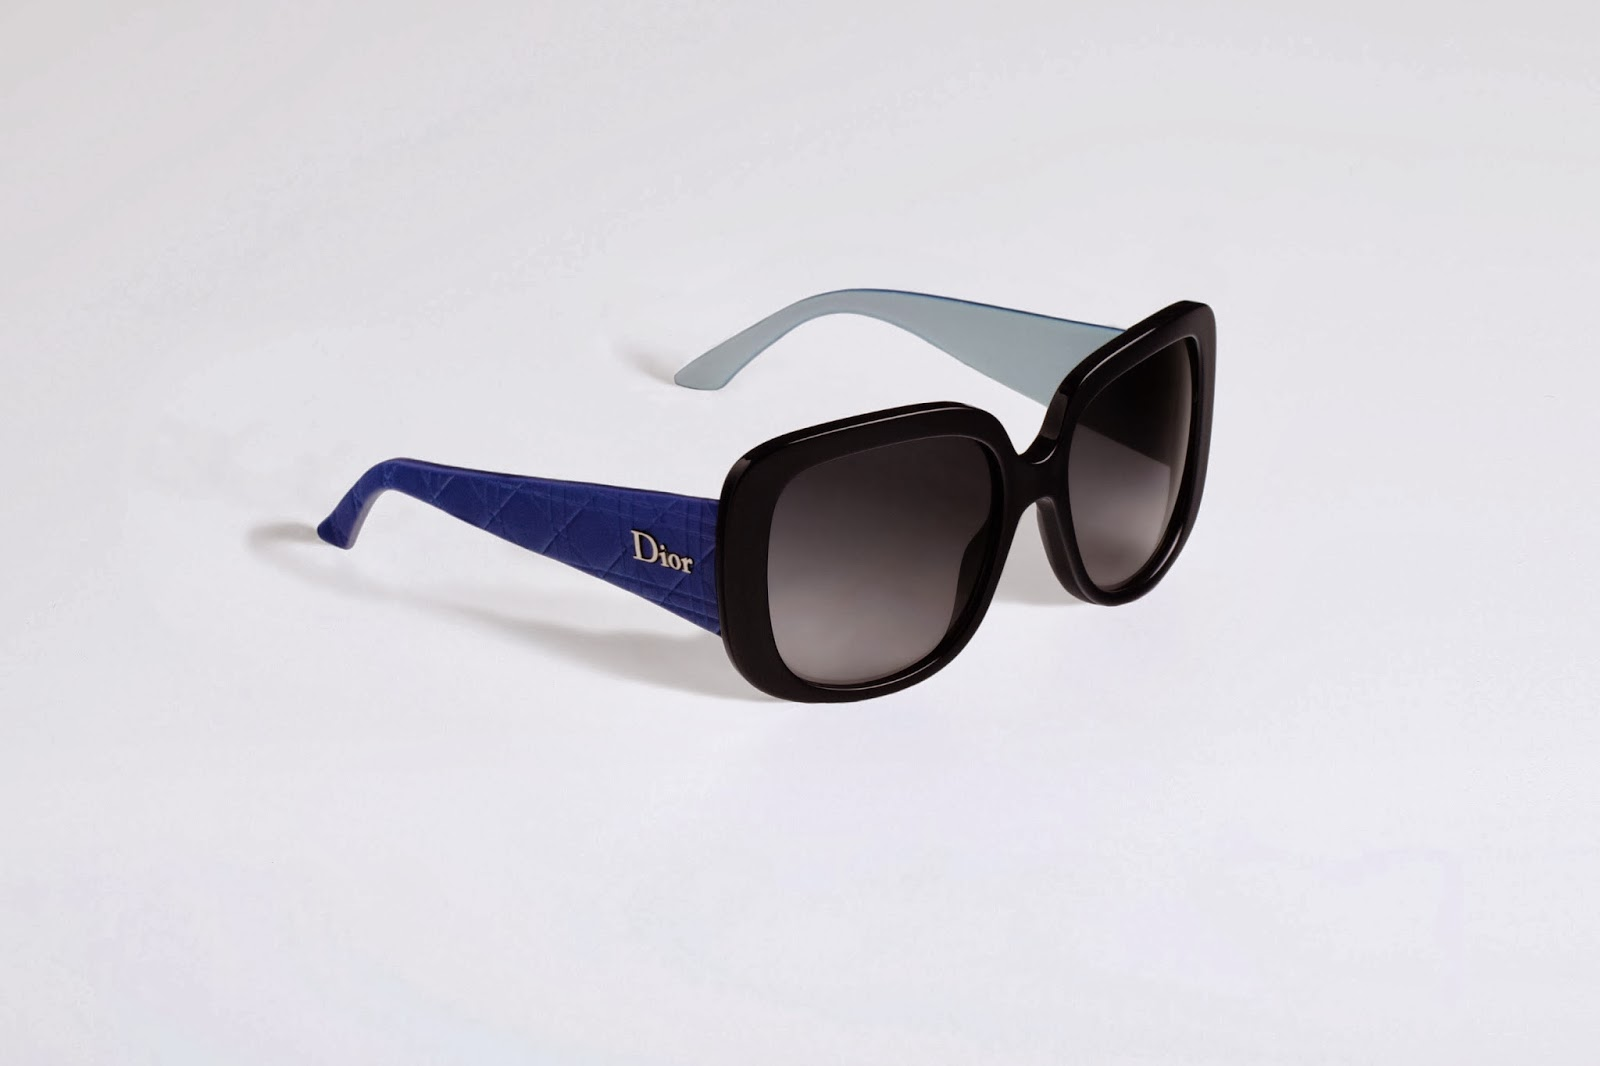 http://www.dior.com/couture/en_gb/womens-fashion/accessories/eyewear/bleu-nuit-bleu-lagon-dior-lady-lady-1-sunglasses-6-7067